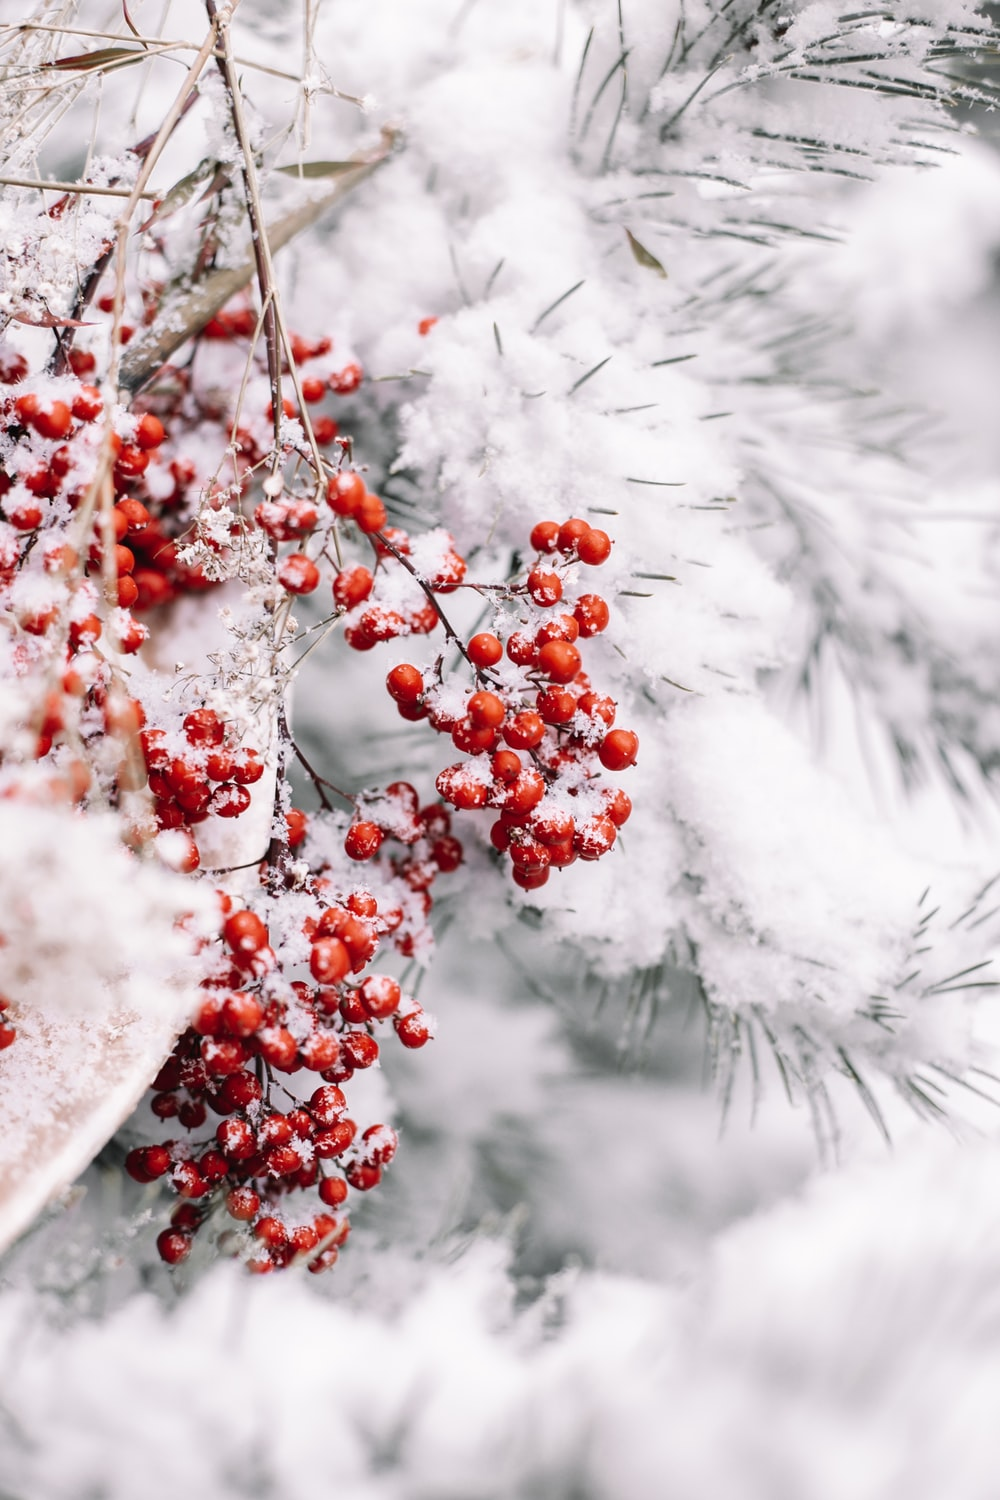 red round fruits covered with snow